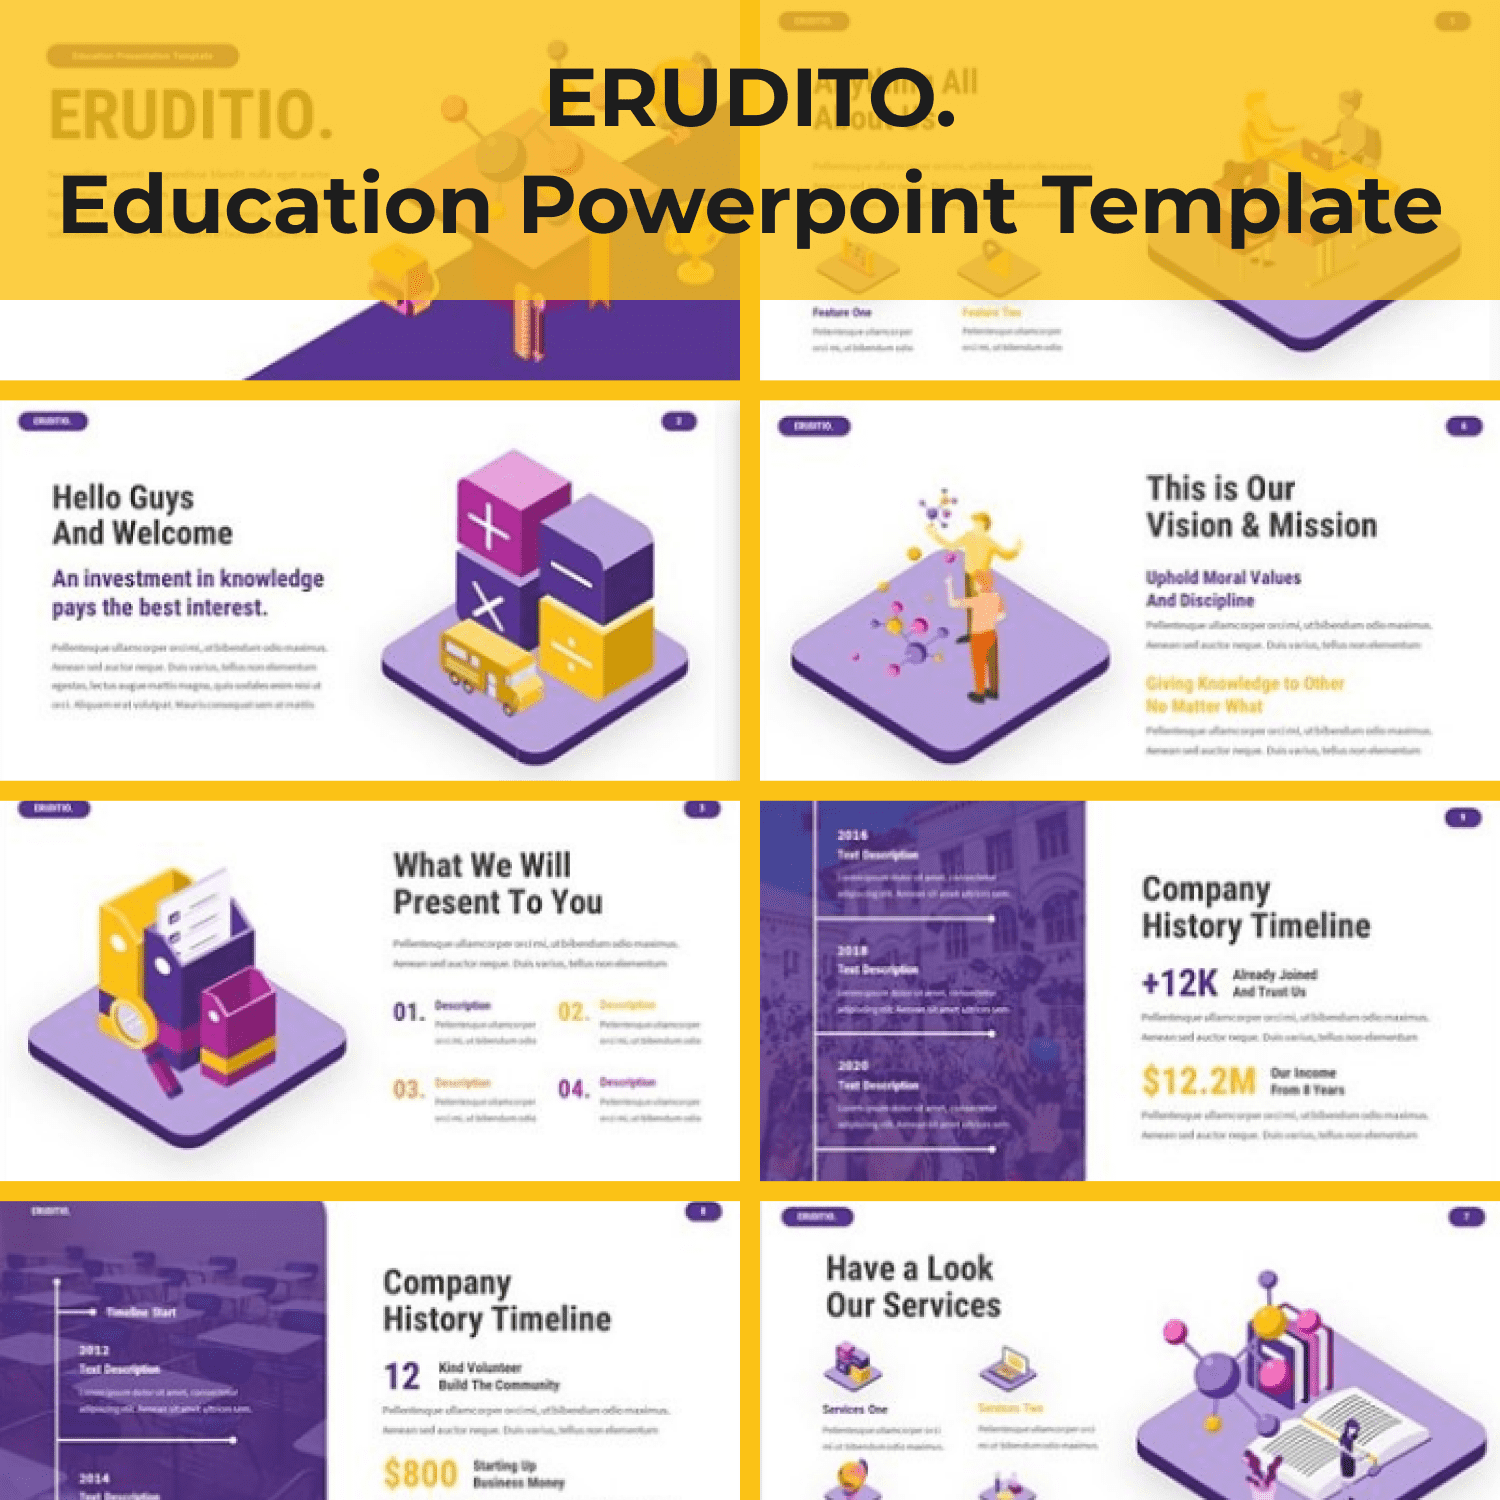 Eruditio - Education Powerpoint cover image.